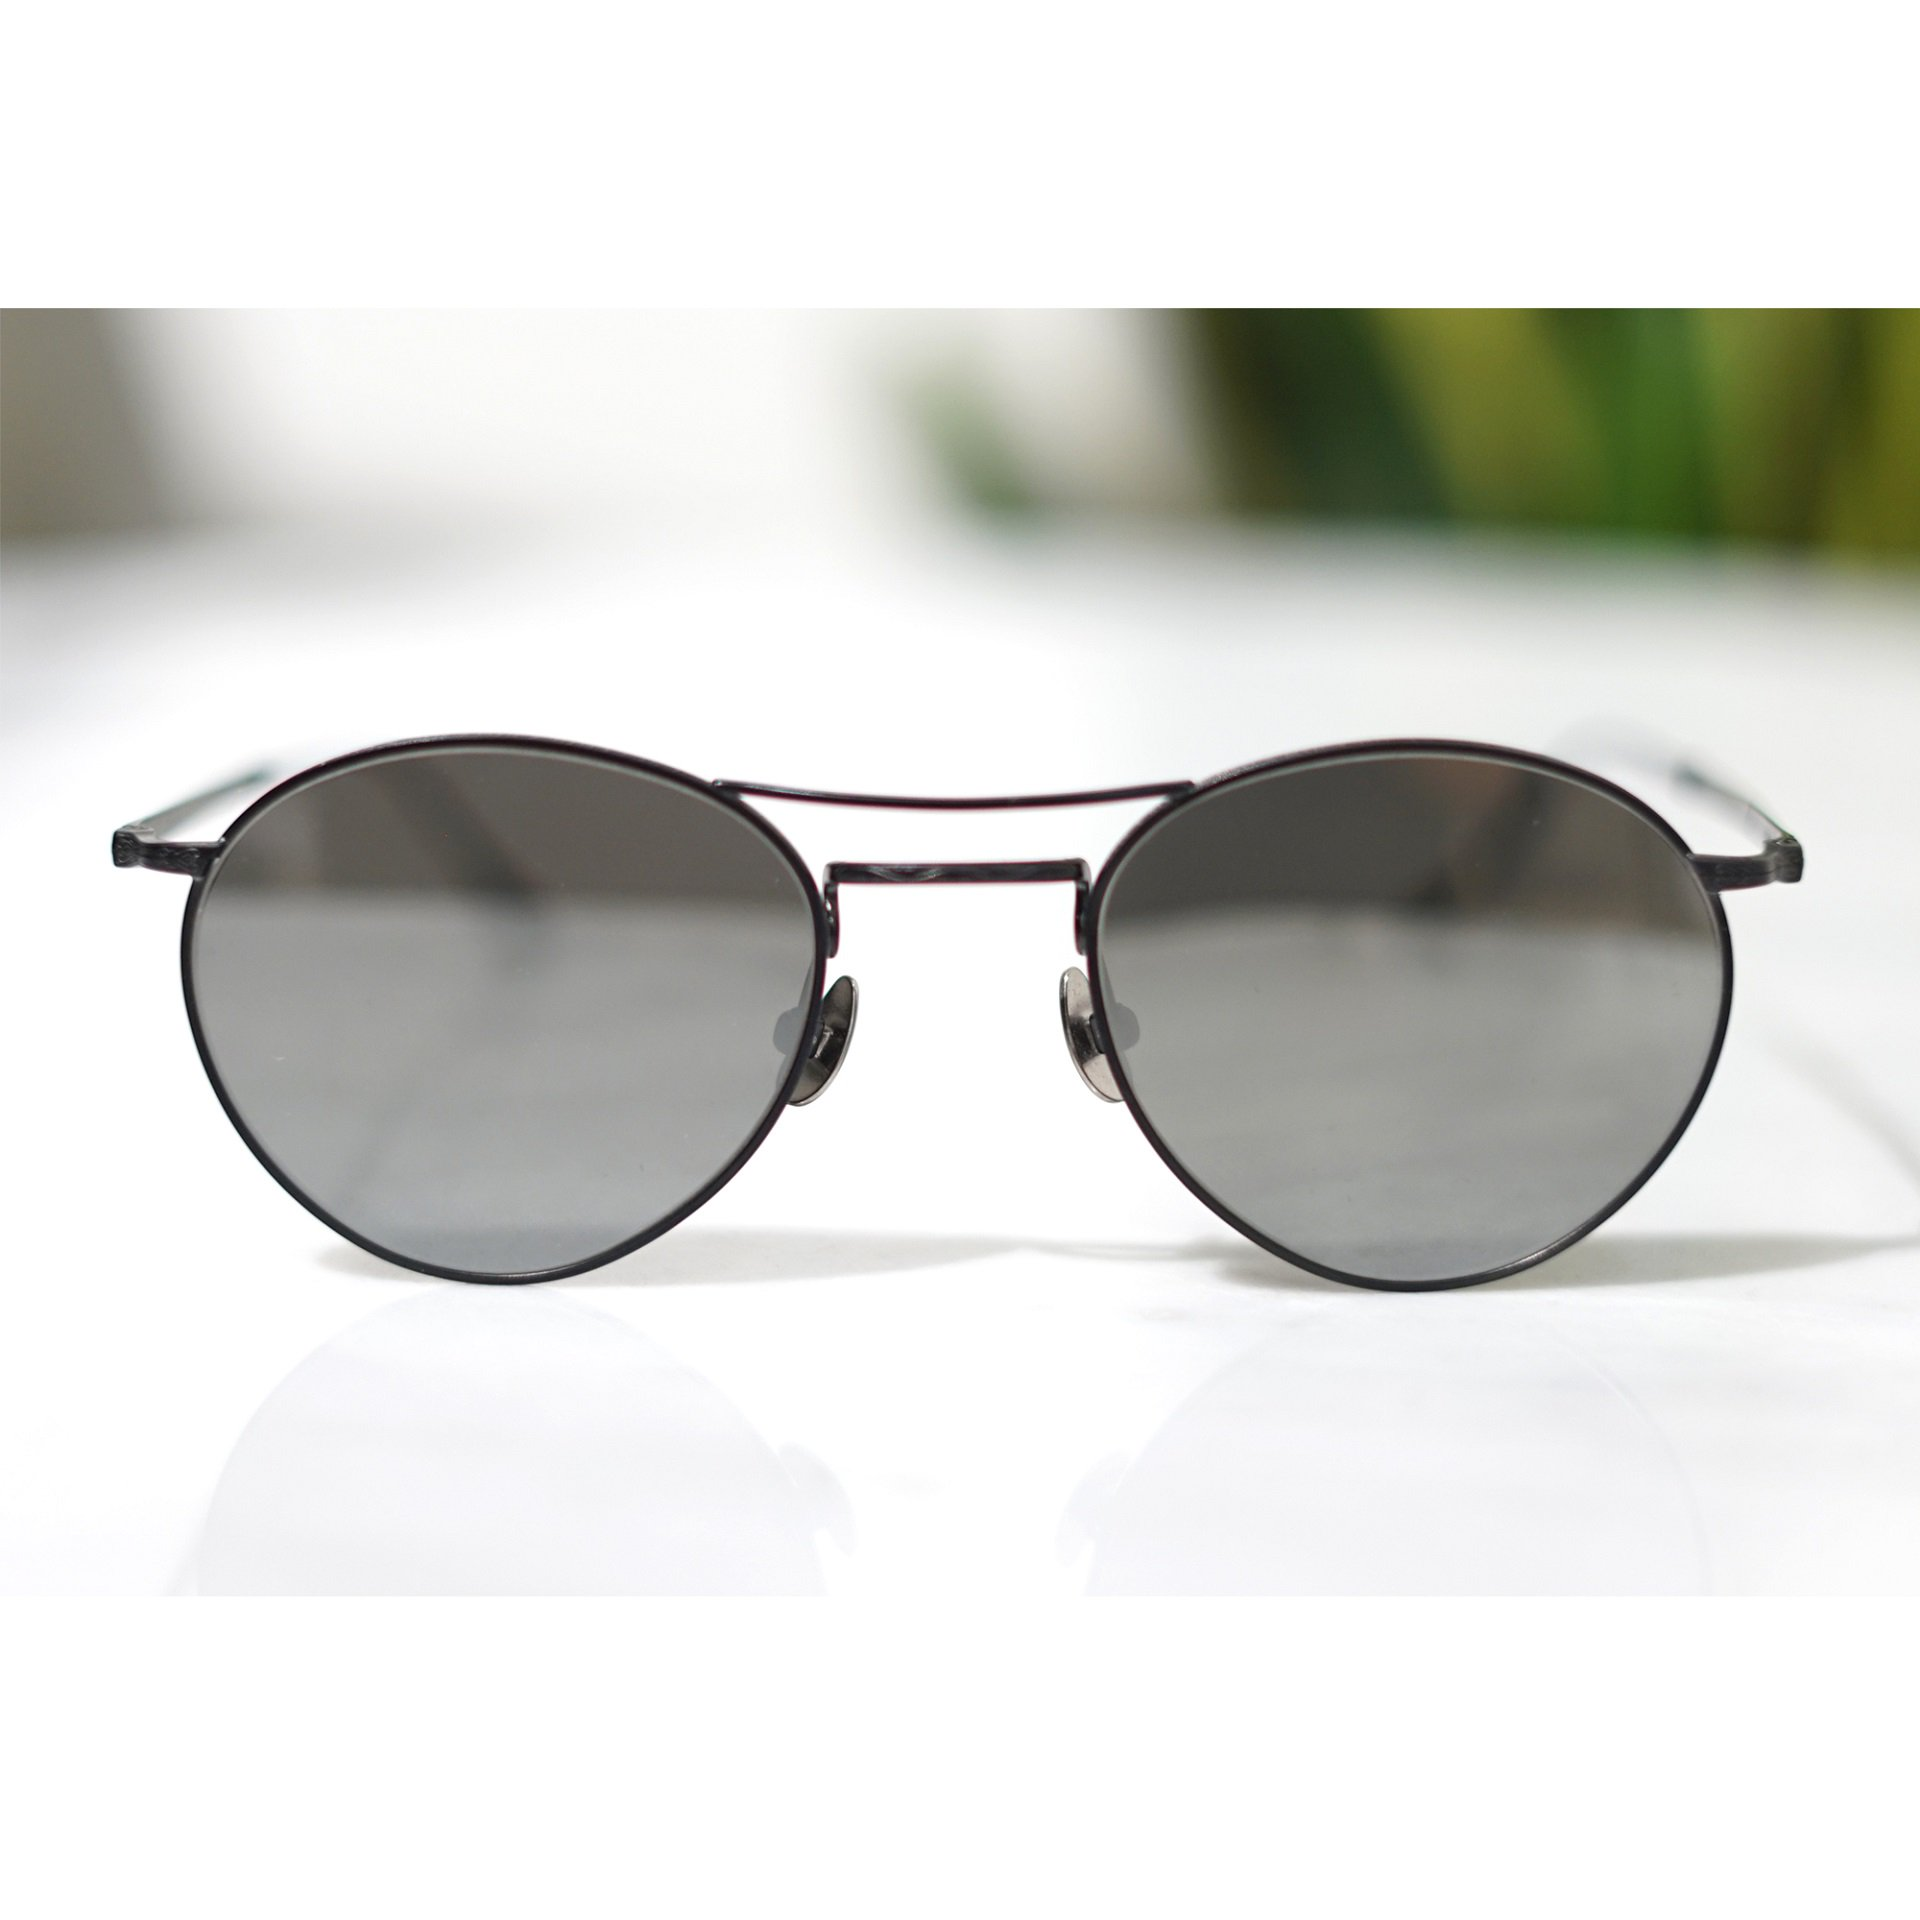 MATSUDA EYEWEAR-M3084 DOUBLE BRIDGE METAL SUNGLASSES